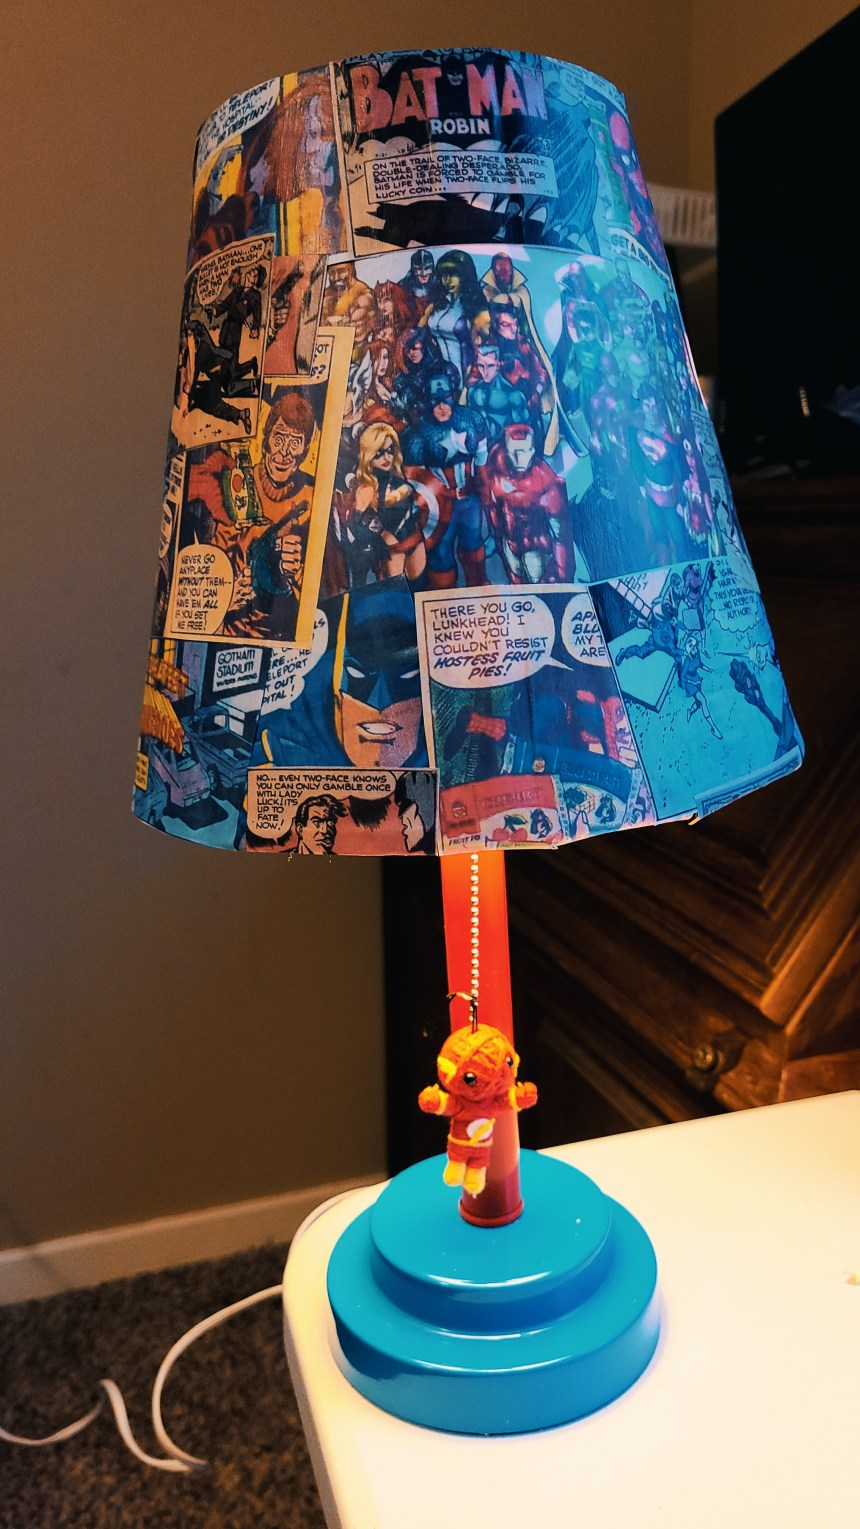 Upcycled superhero lamp with string Flash as the on/off pull string, and lamp turned on.